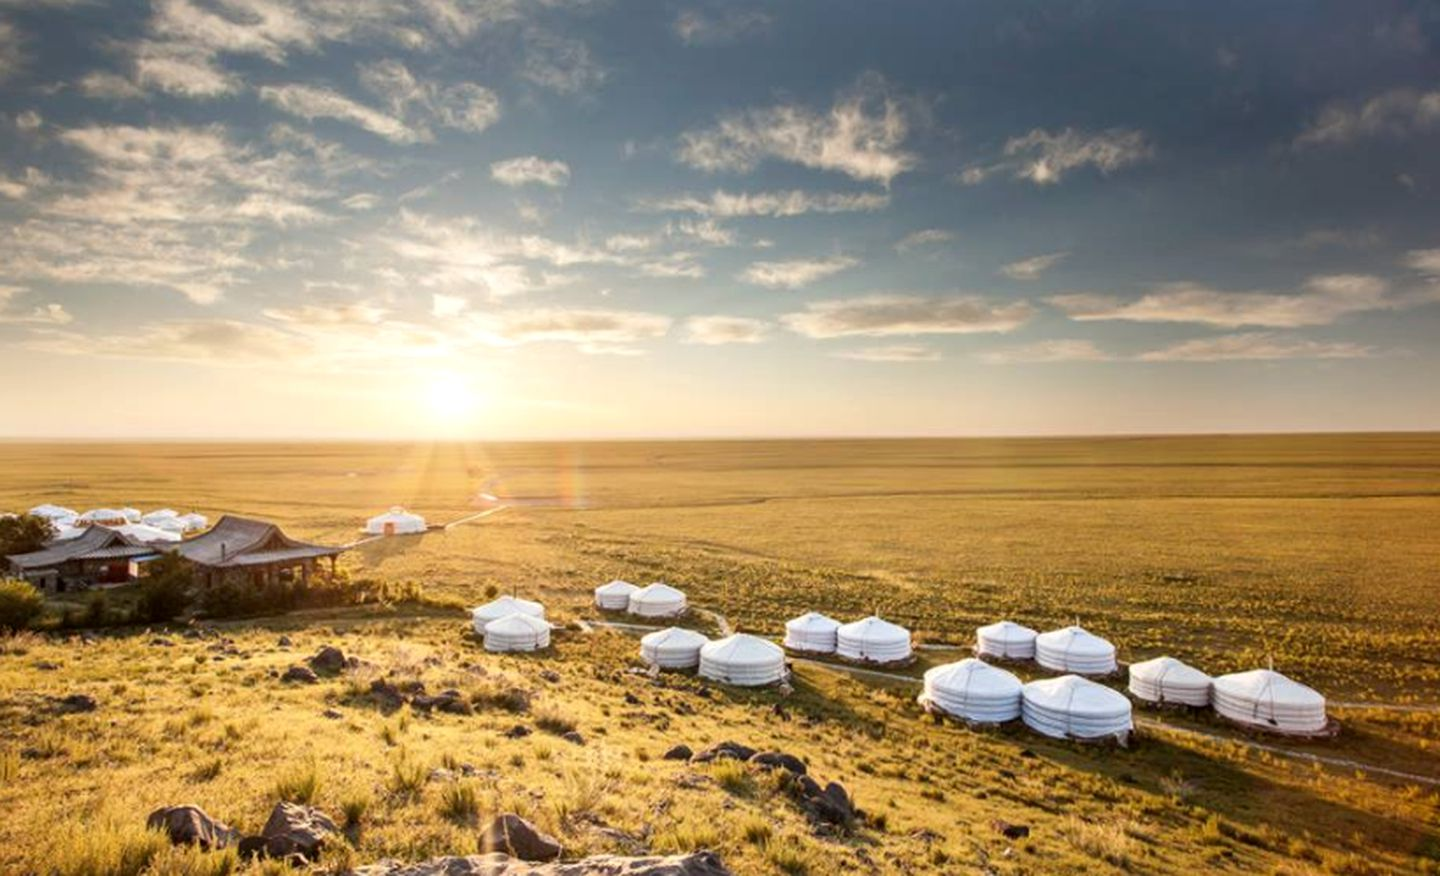 Authentic Mongolian tents in the Gobi Desert.